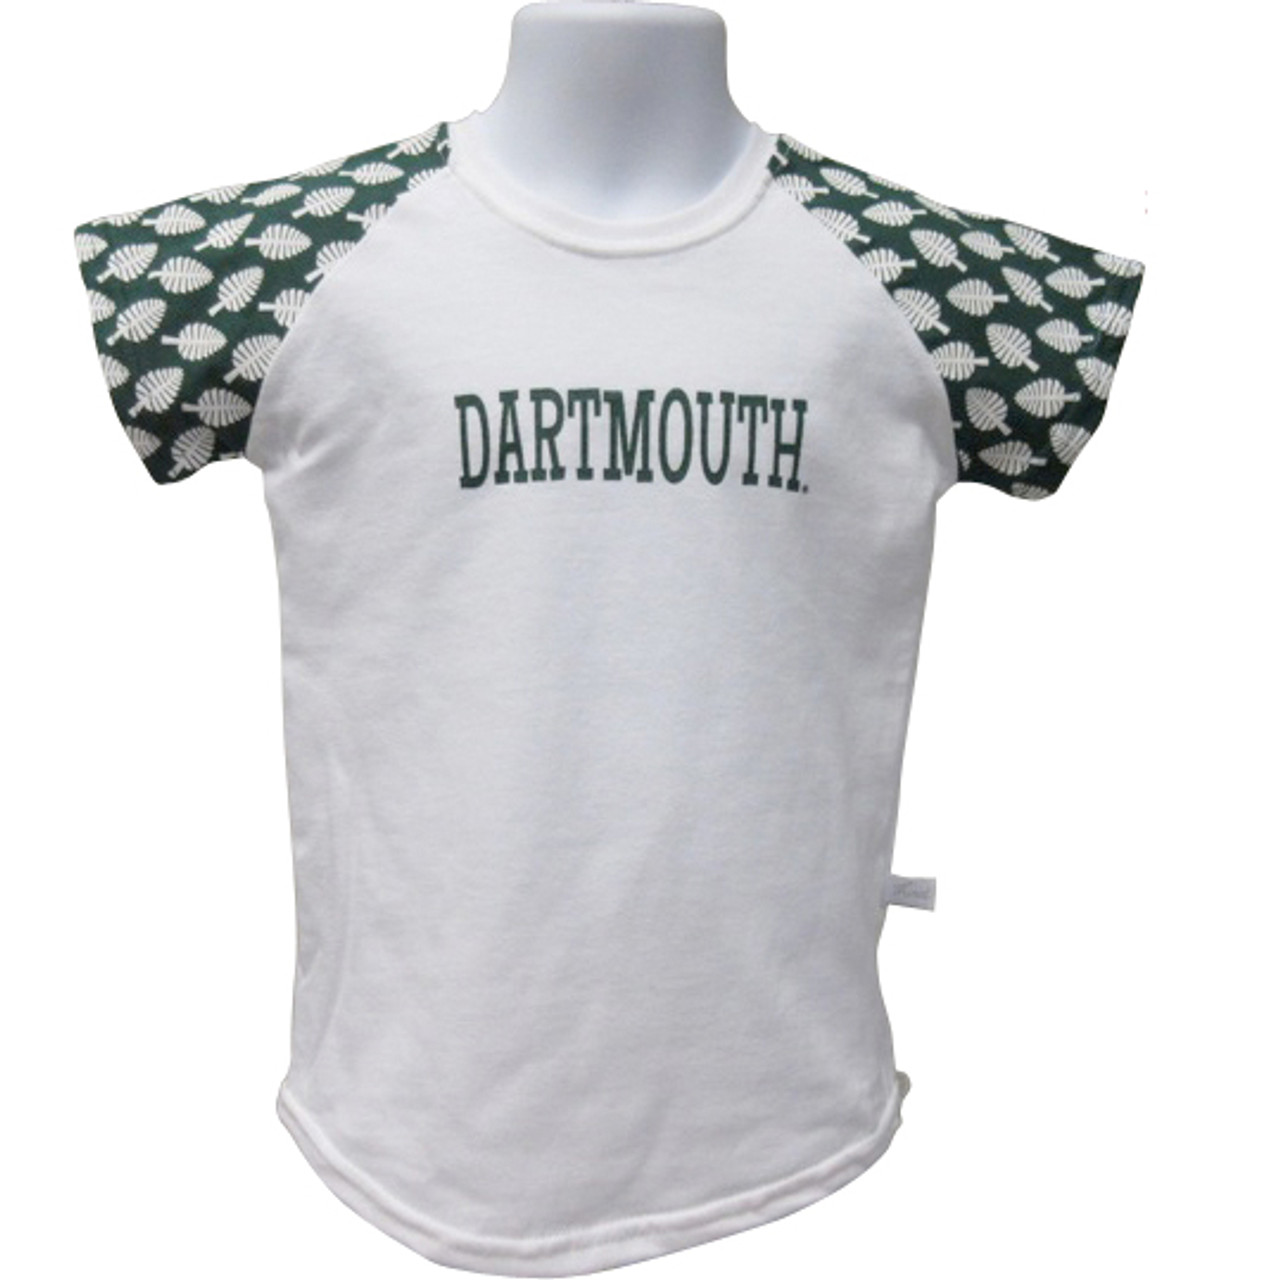 5a3d5a09 Girls/Toddlers short sleeve shirt with green and white checkerboard sleeves,  white body and